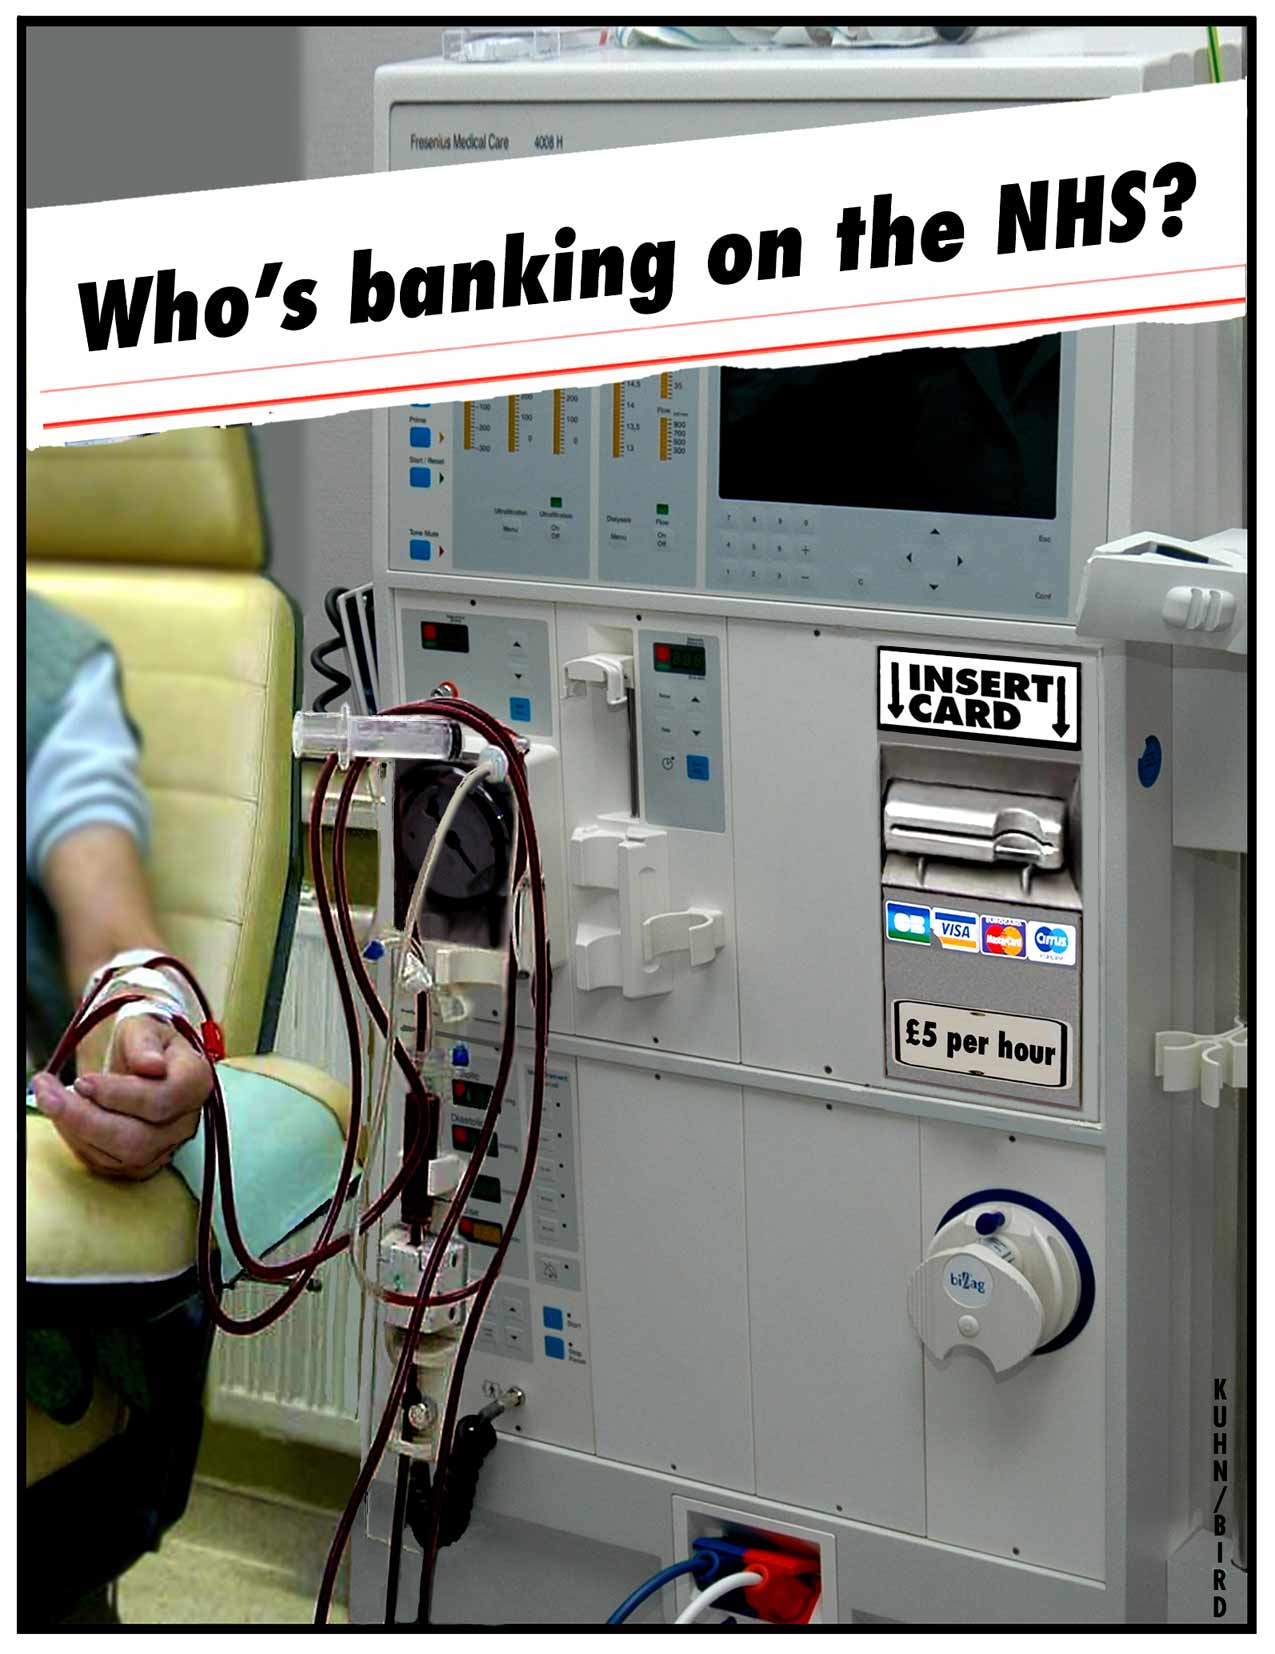 Banking on the NHS by Leon Kuhn and Chris Bird